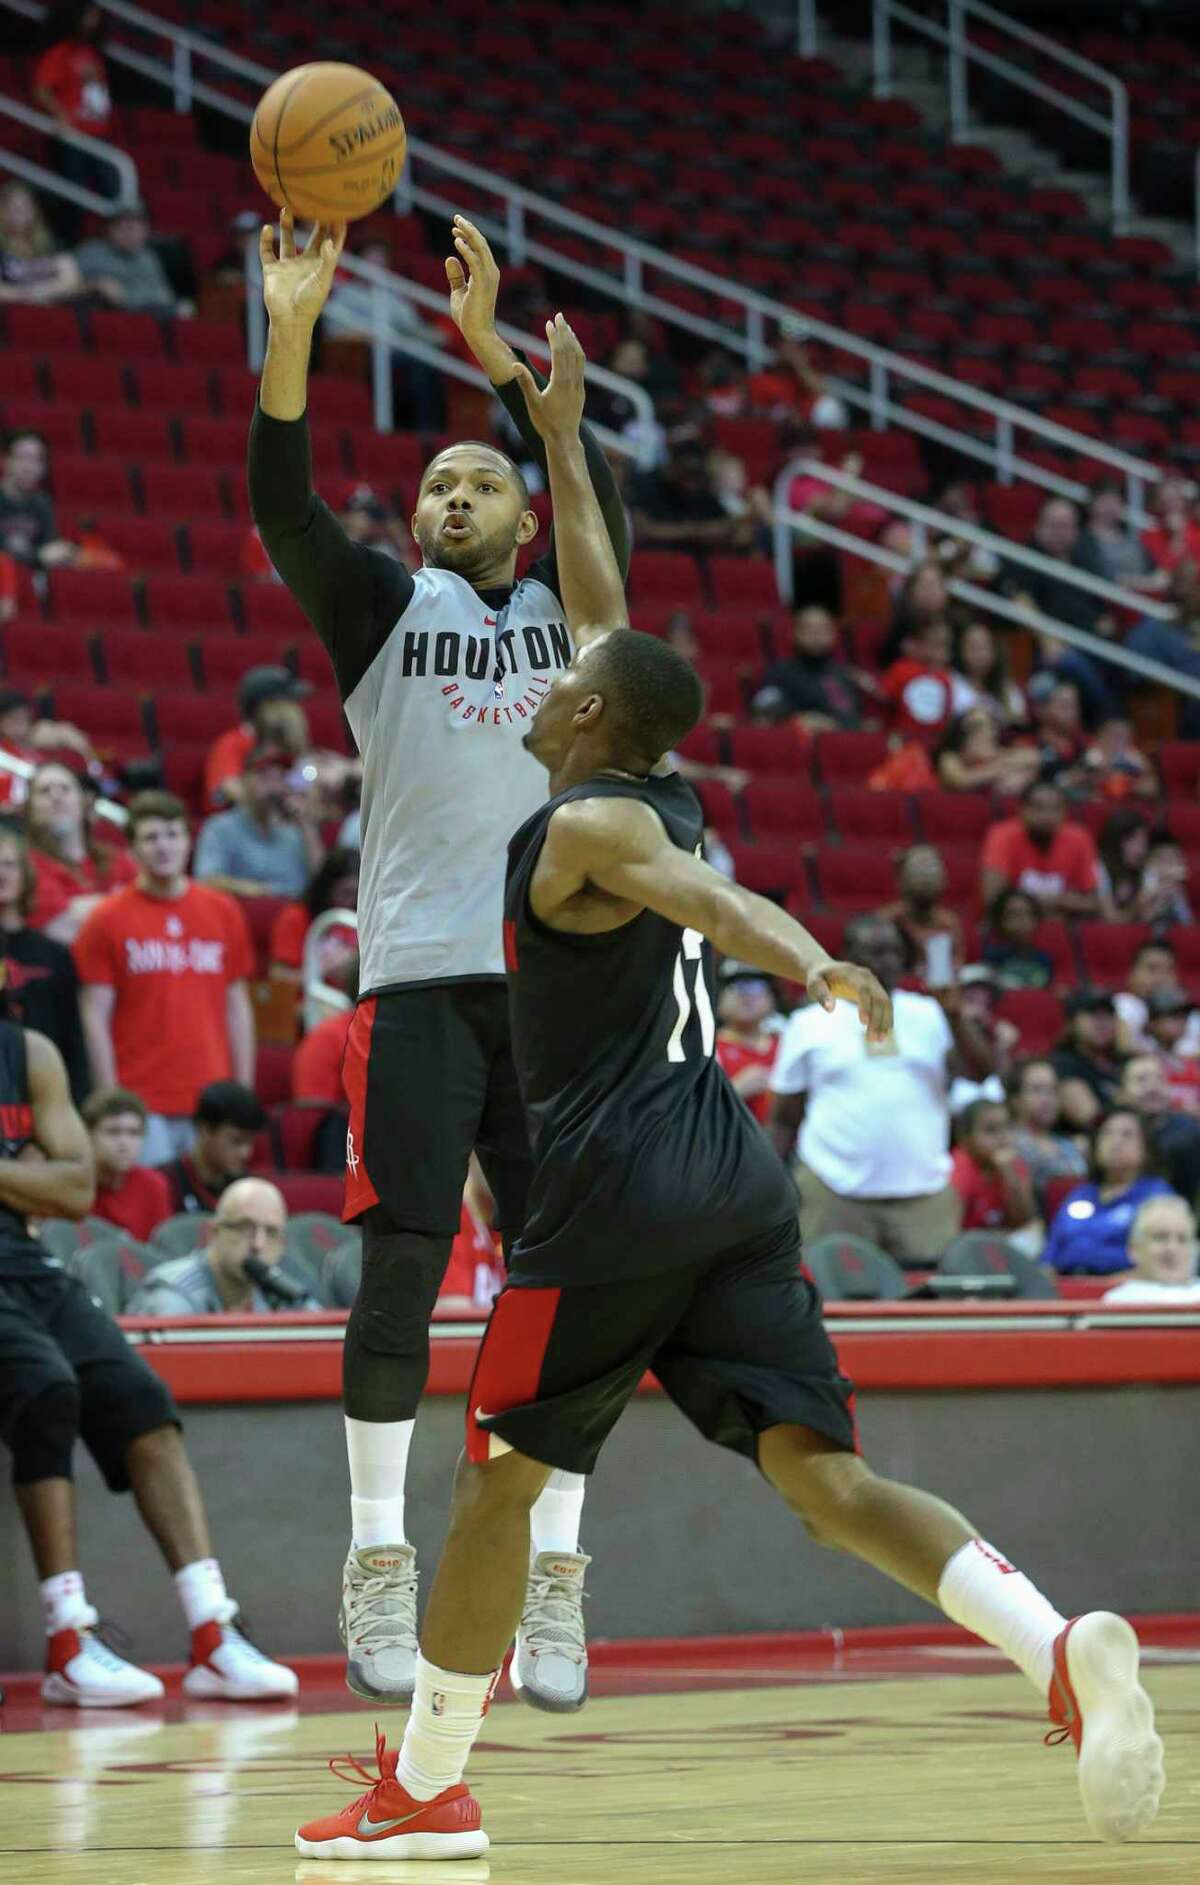 Houston Rockets' Eric Gordon shoots the basket during the practice game at the fan fest at Toyota Center Saturday, Oct. 7, 2017, in Houston.